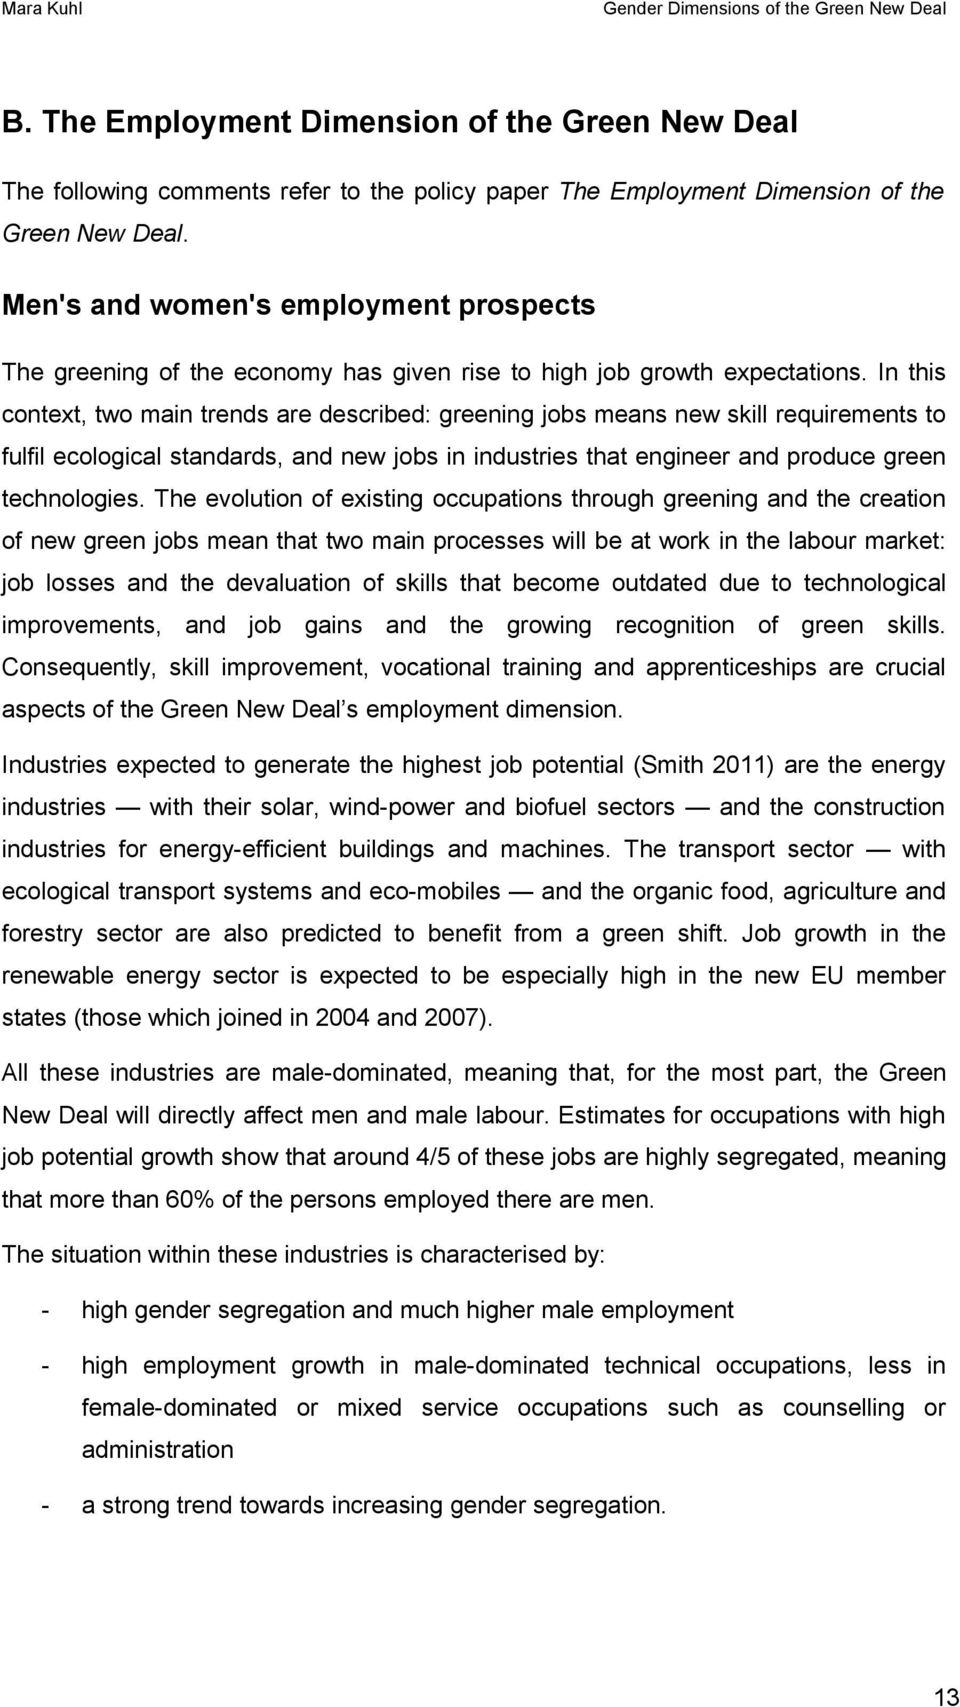 In this cntext, tw main trends are described: greening jbs means new skill requirements t fulfil eclgical standards, and new jbs in industries that engineer and prduce green technlgies.